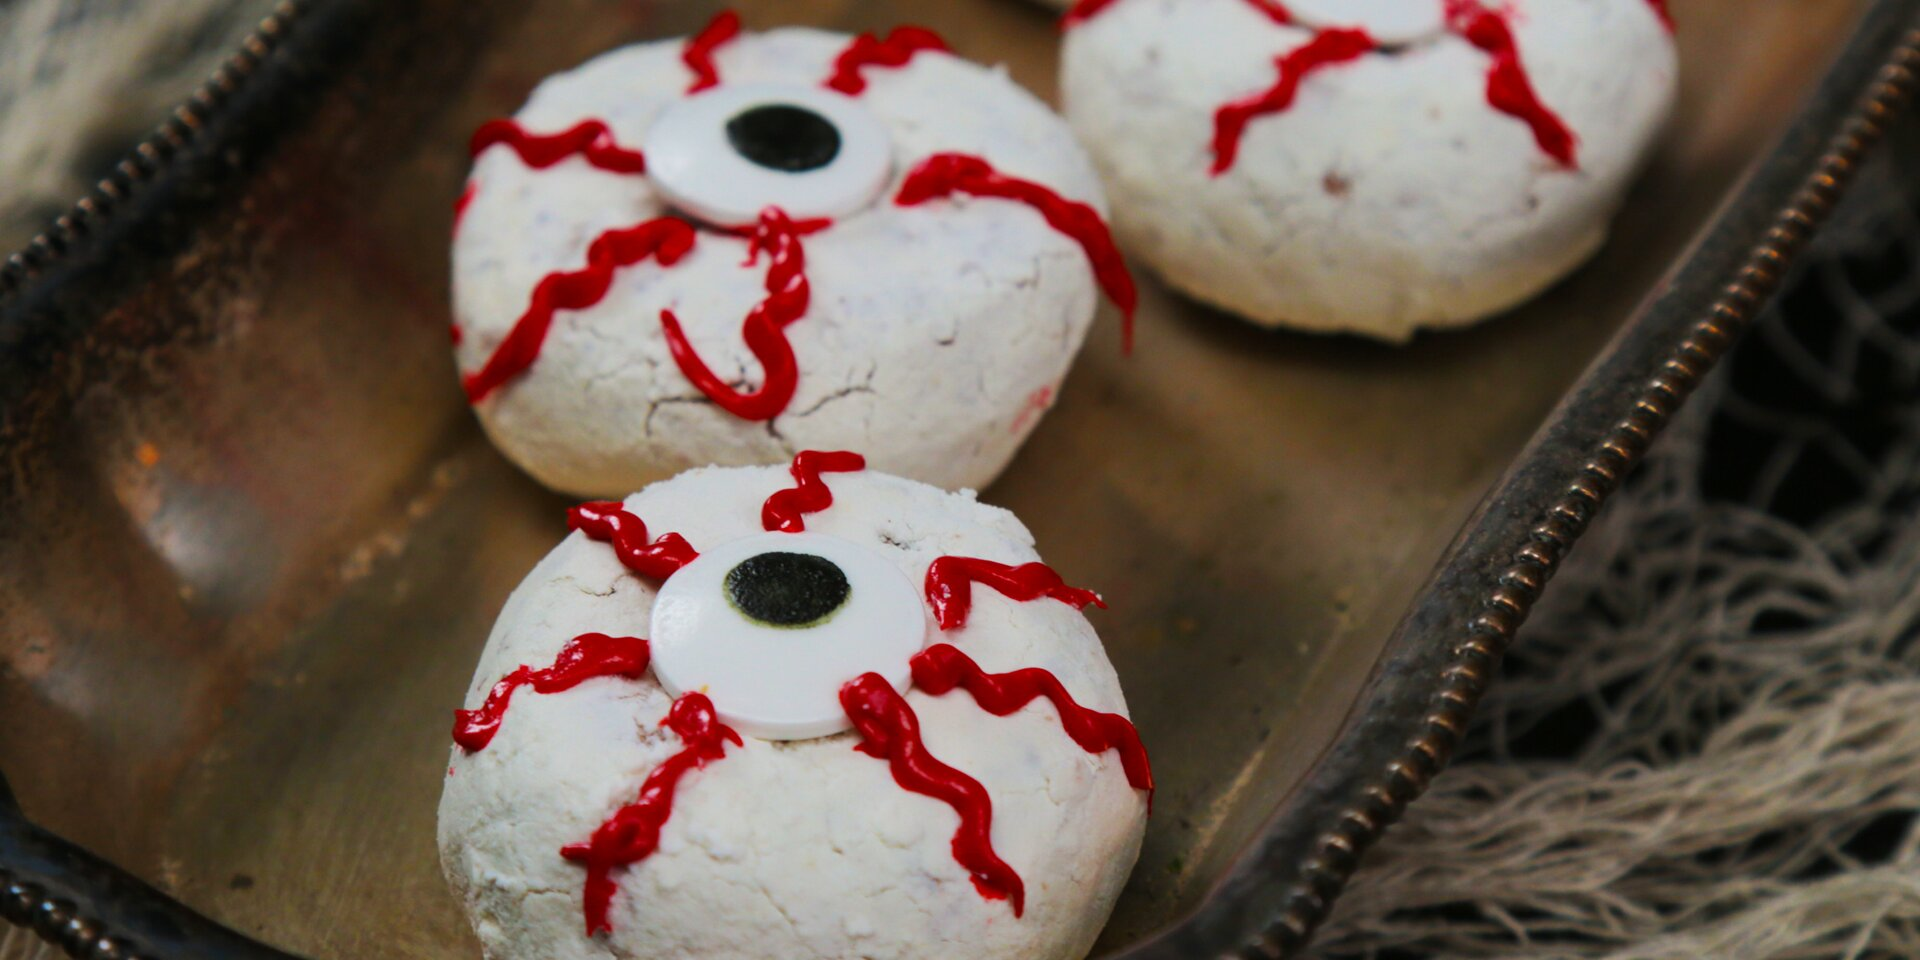 Halloween Crafts And Treats.20 Of The Most Epic Halloween Food Craft Ideas On Pinterest Myrecipes